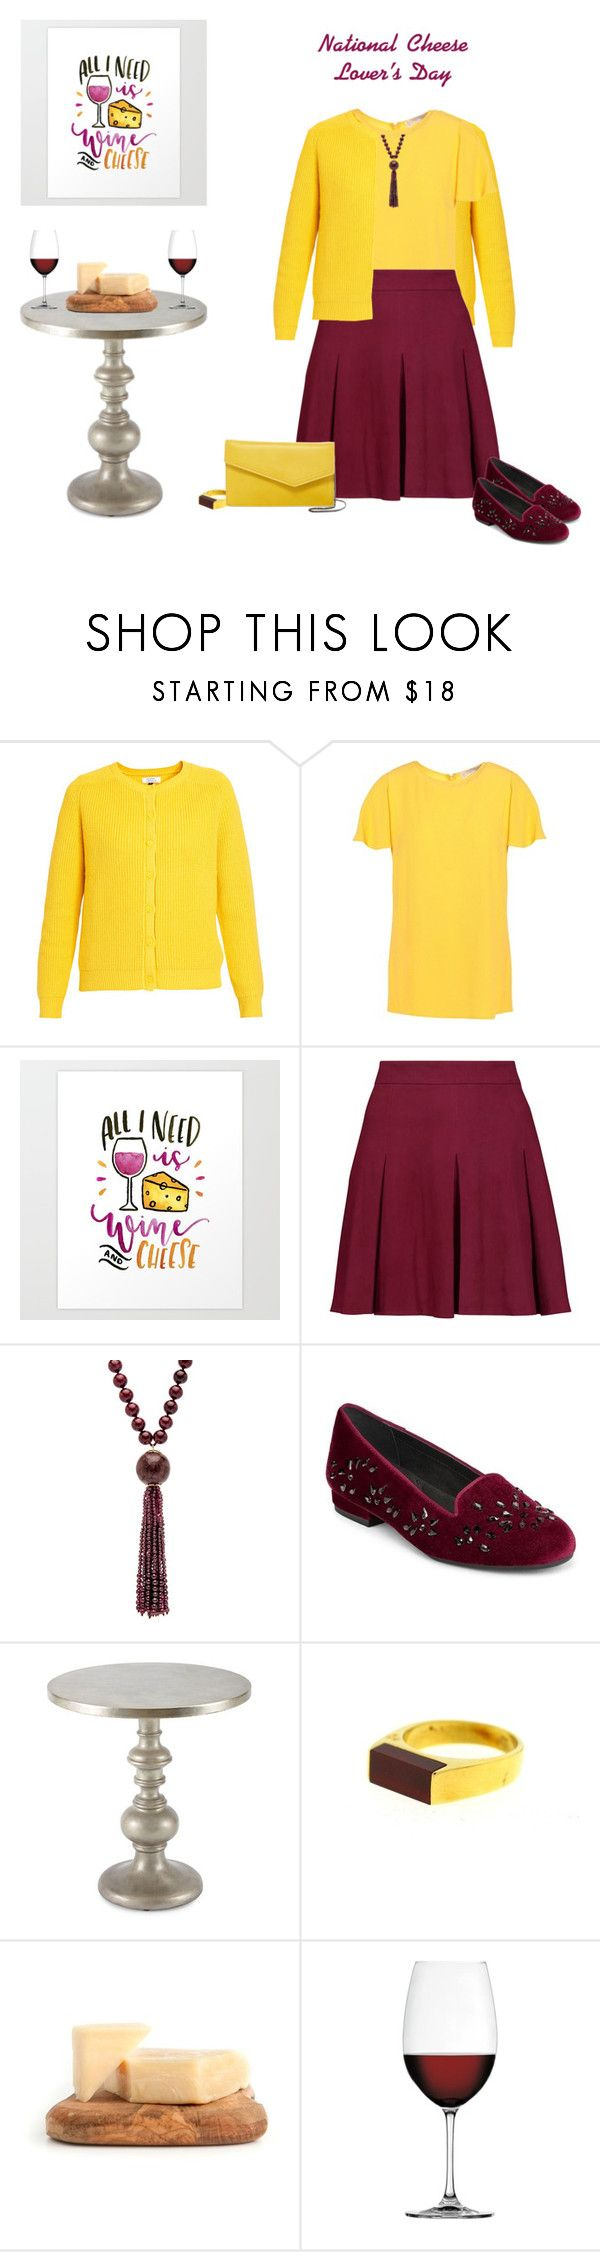 """""""National Cheese Lovers Day"""" by tracy-gowen ❤ liked on Polyvore featuring MICHAEL Michael Kors, Alice + Olivia, Aerosoles, Hooker Furniture, Nachtmann and Urban Expressions"""